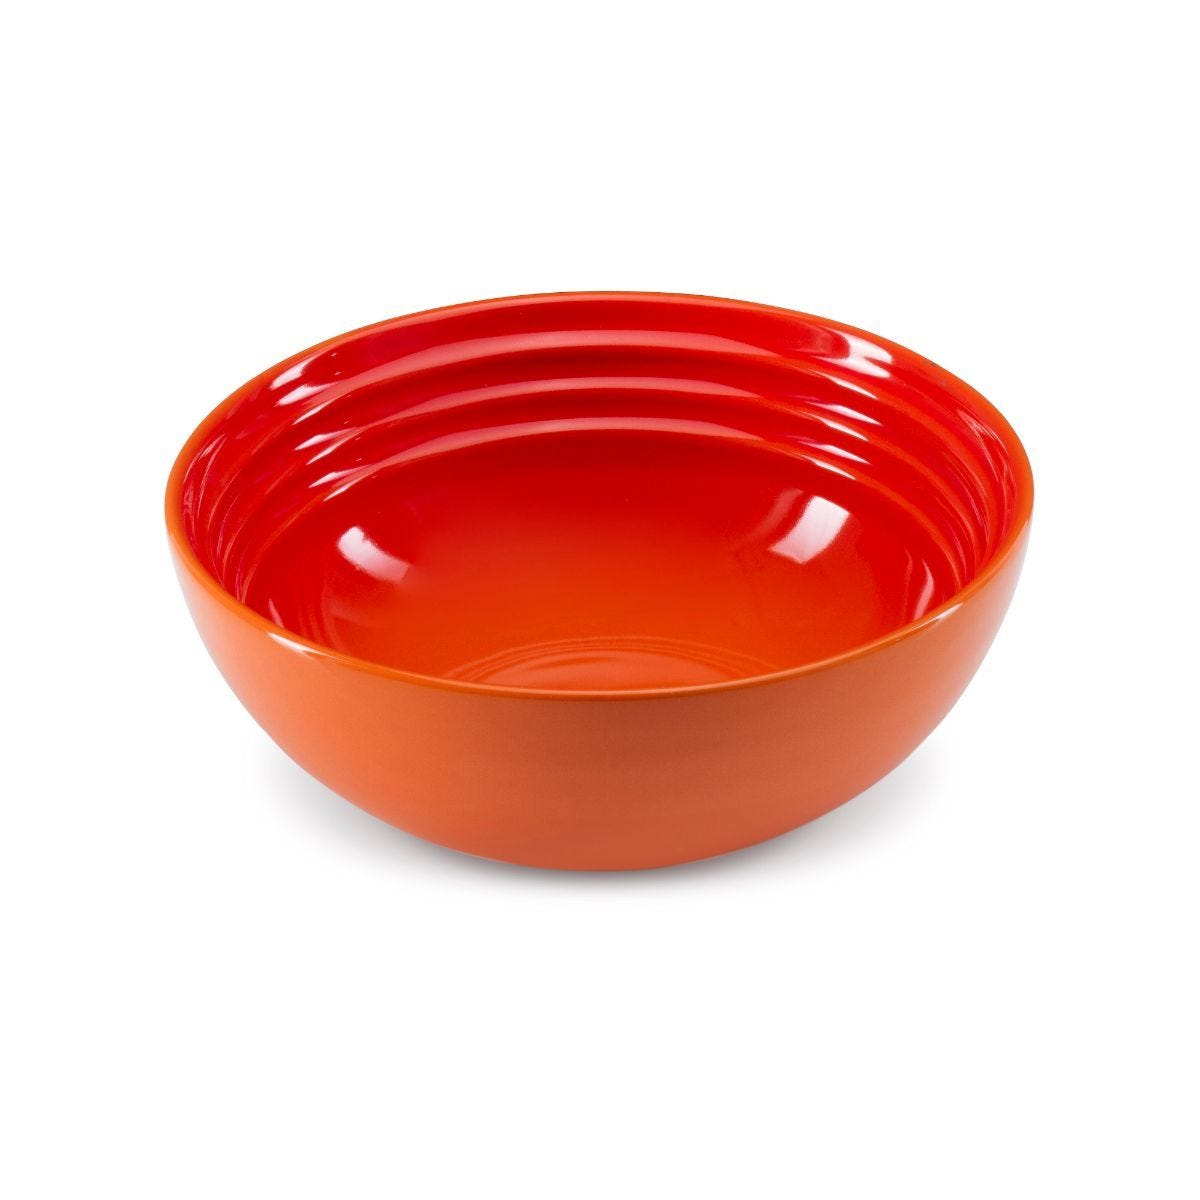 Le Creuset Stoneware Cereal Bowl 16cm Volcanic